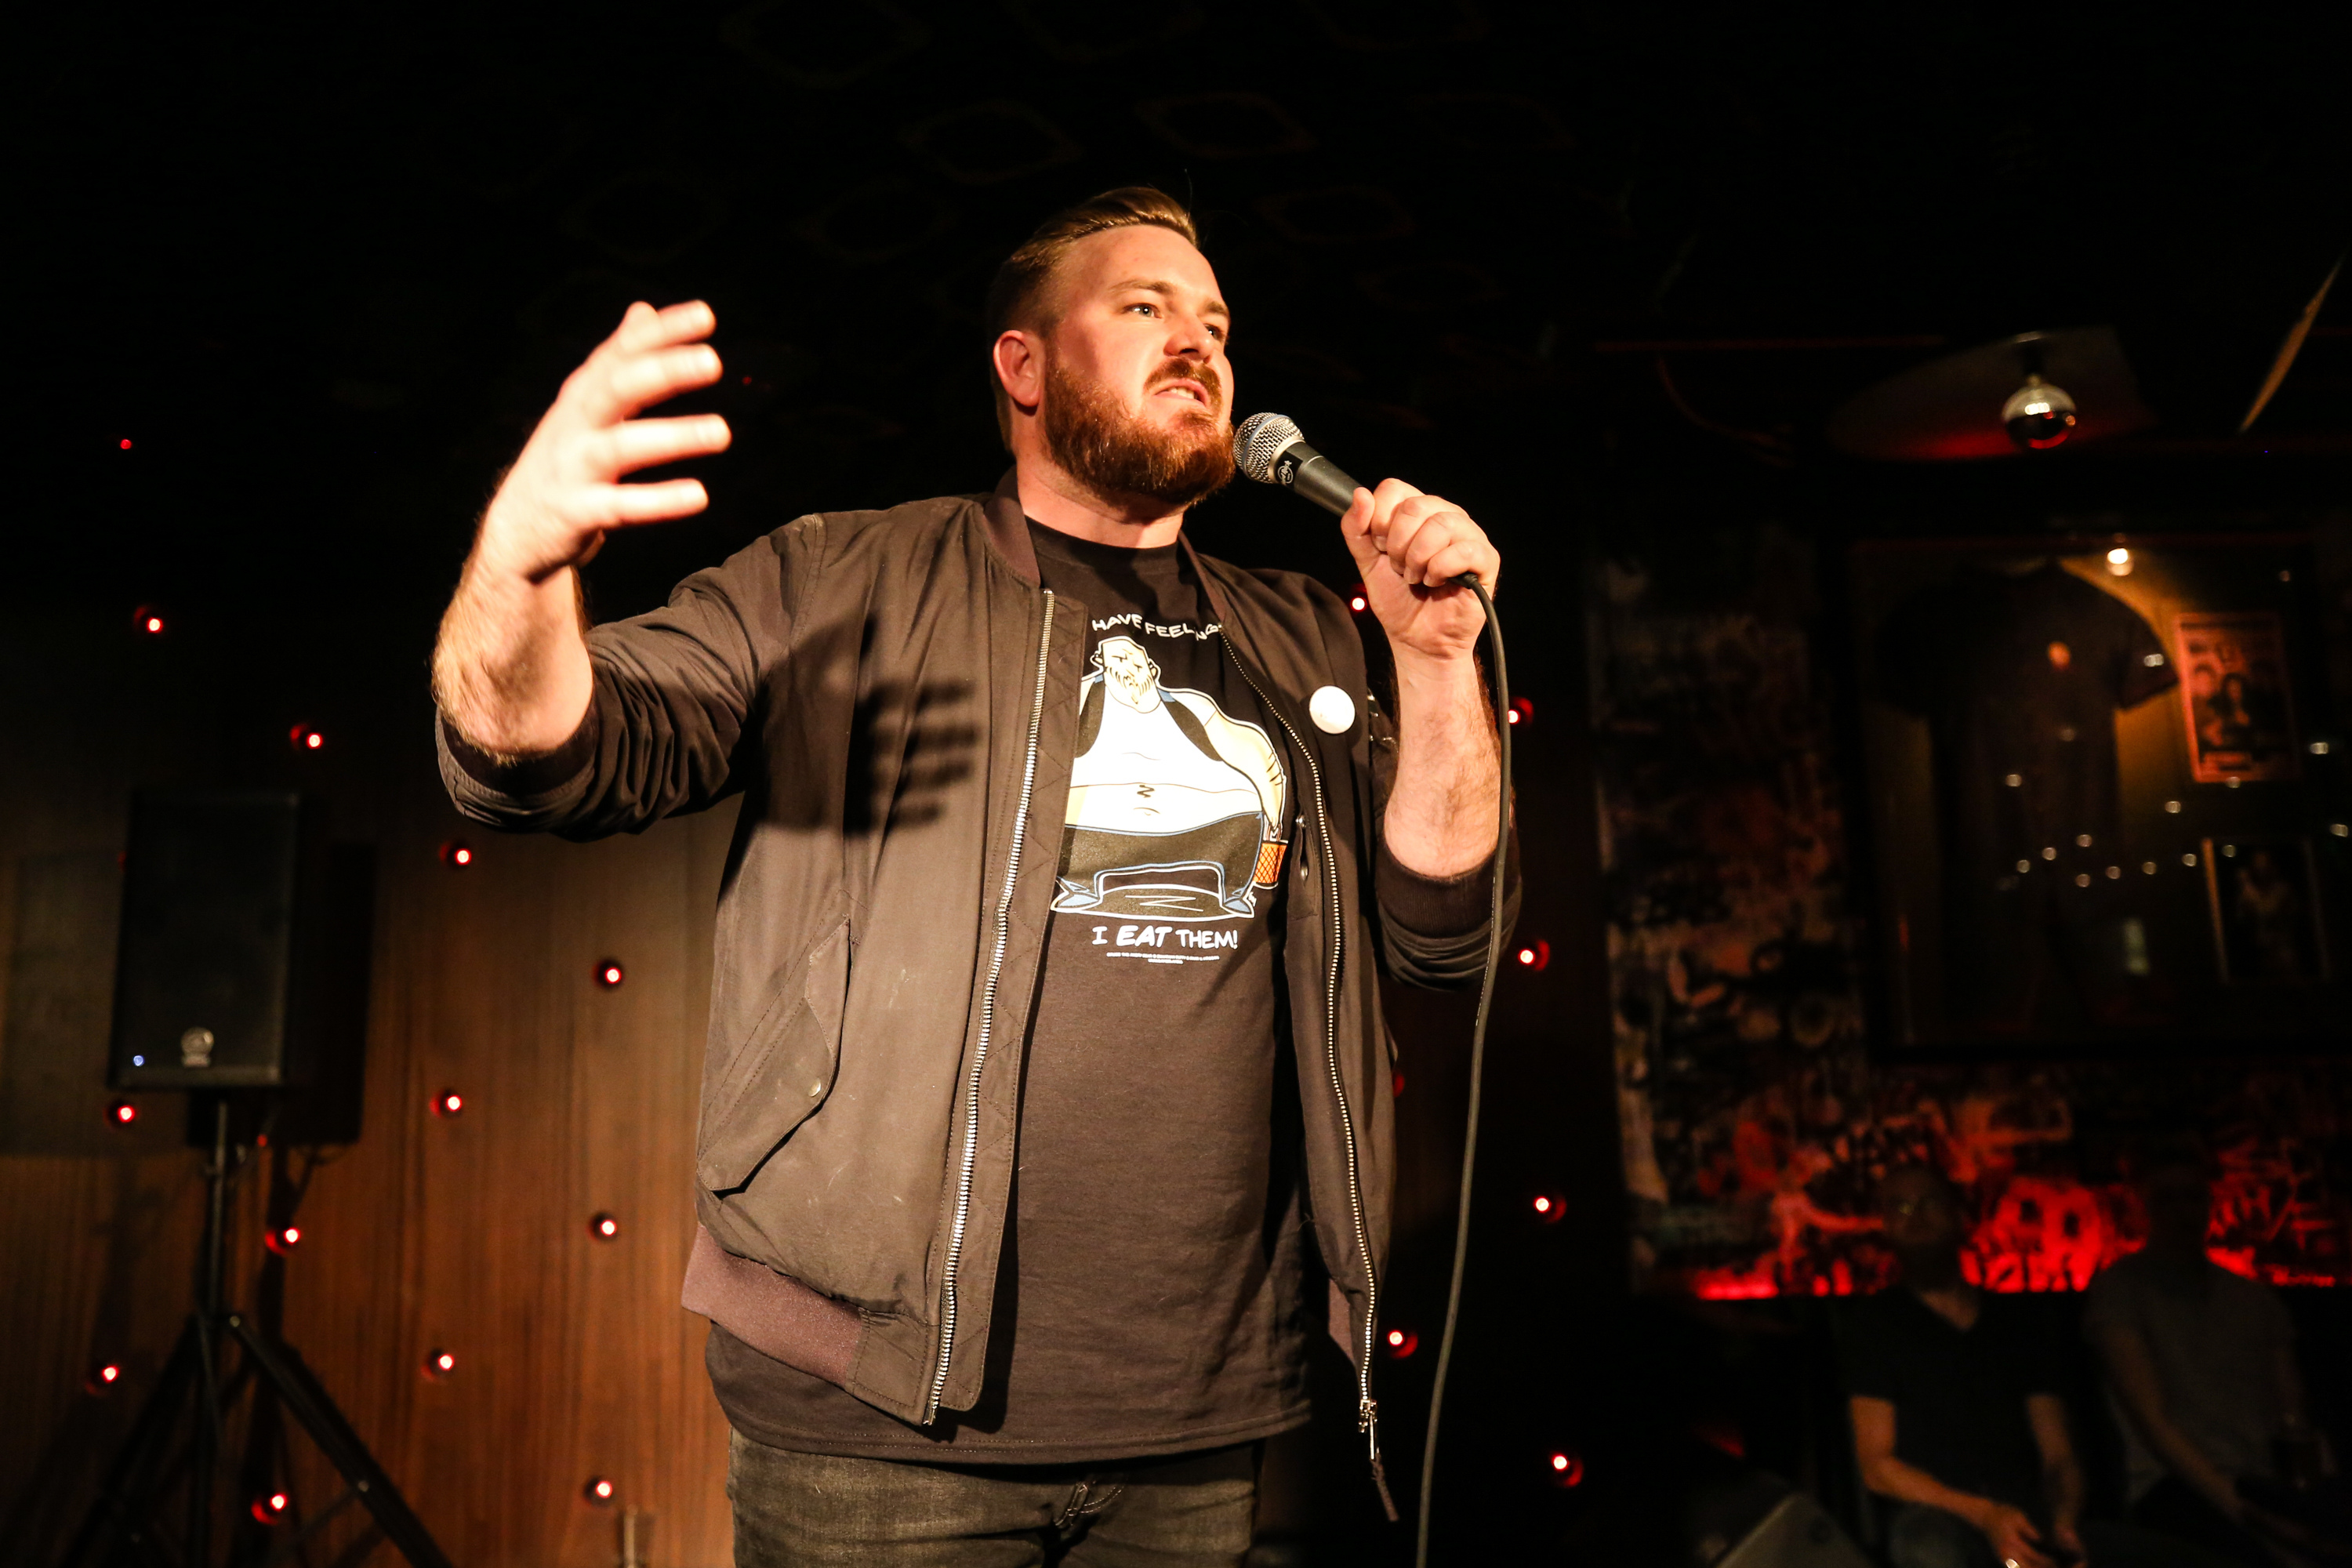 Queer stand-up